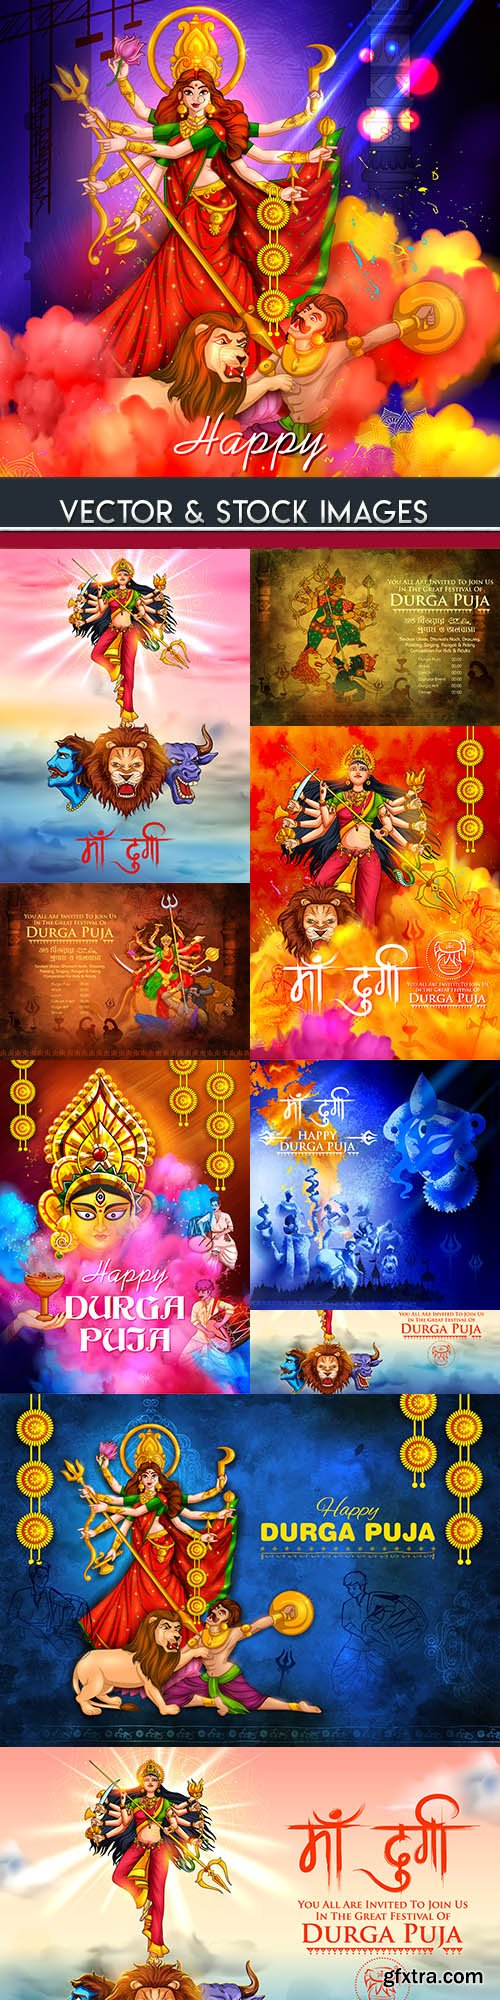 Happy Durga Puja traditional holiday collection illustrations